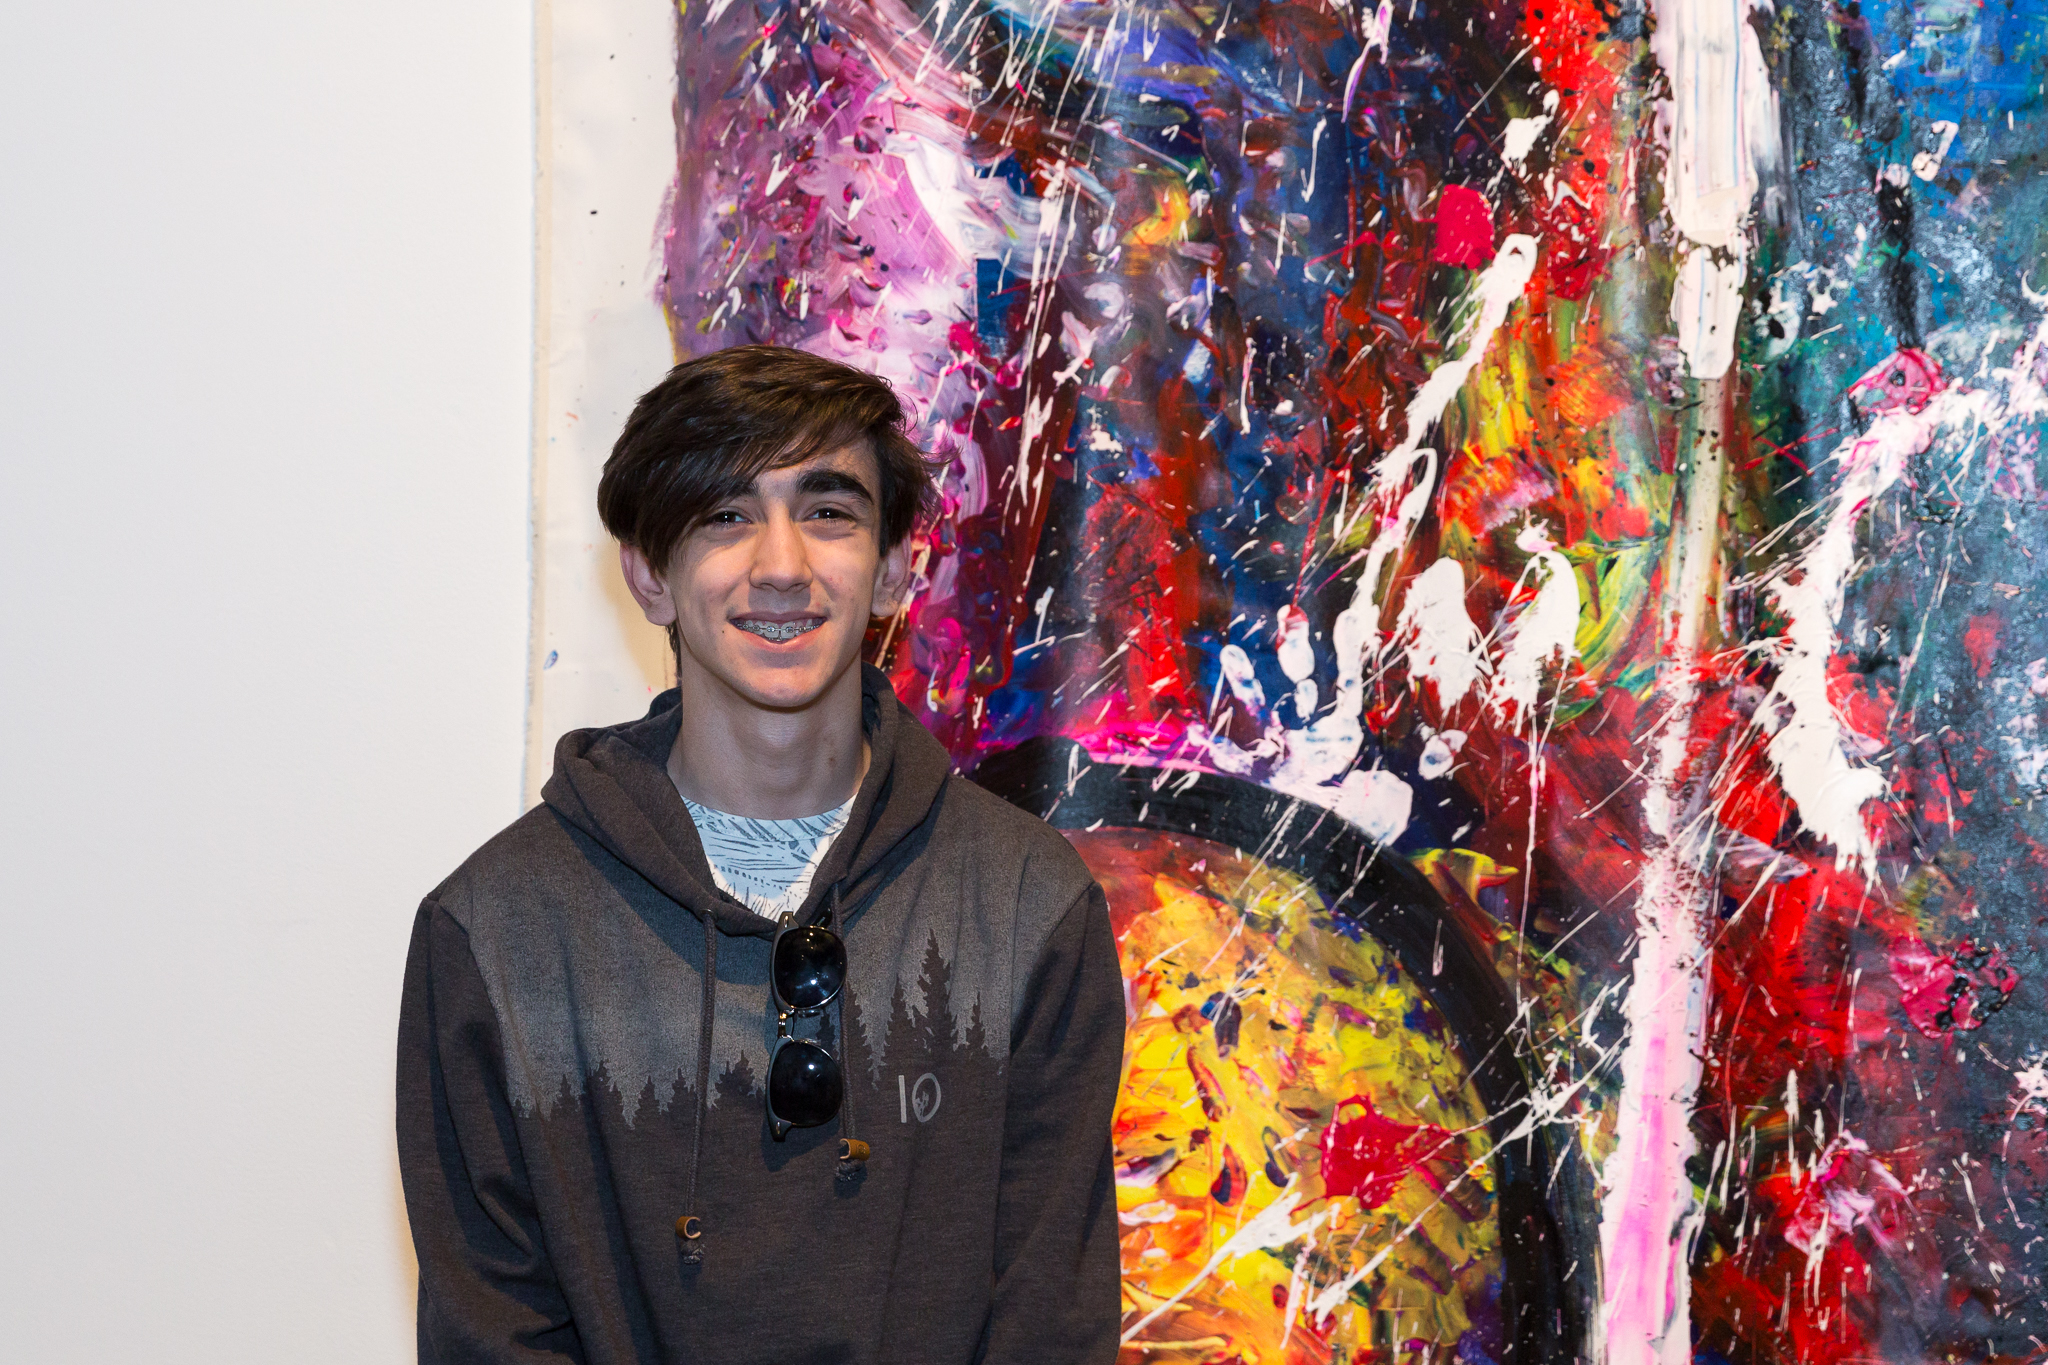 A teenage boy stands smiling in front of a large-scale abstract painting hanging in a white-walled gallery